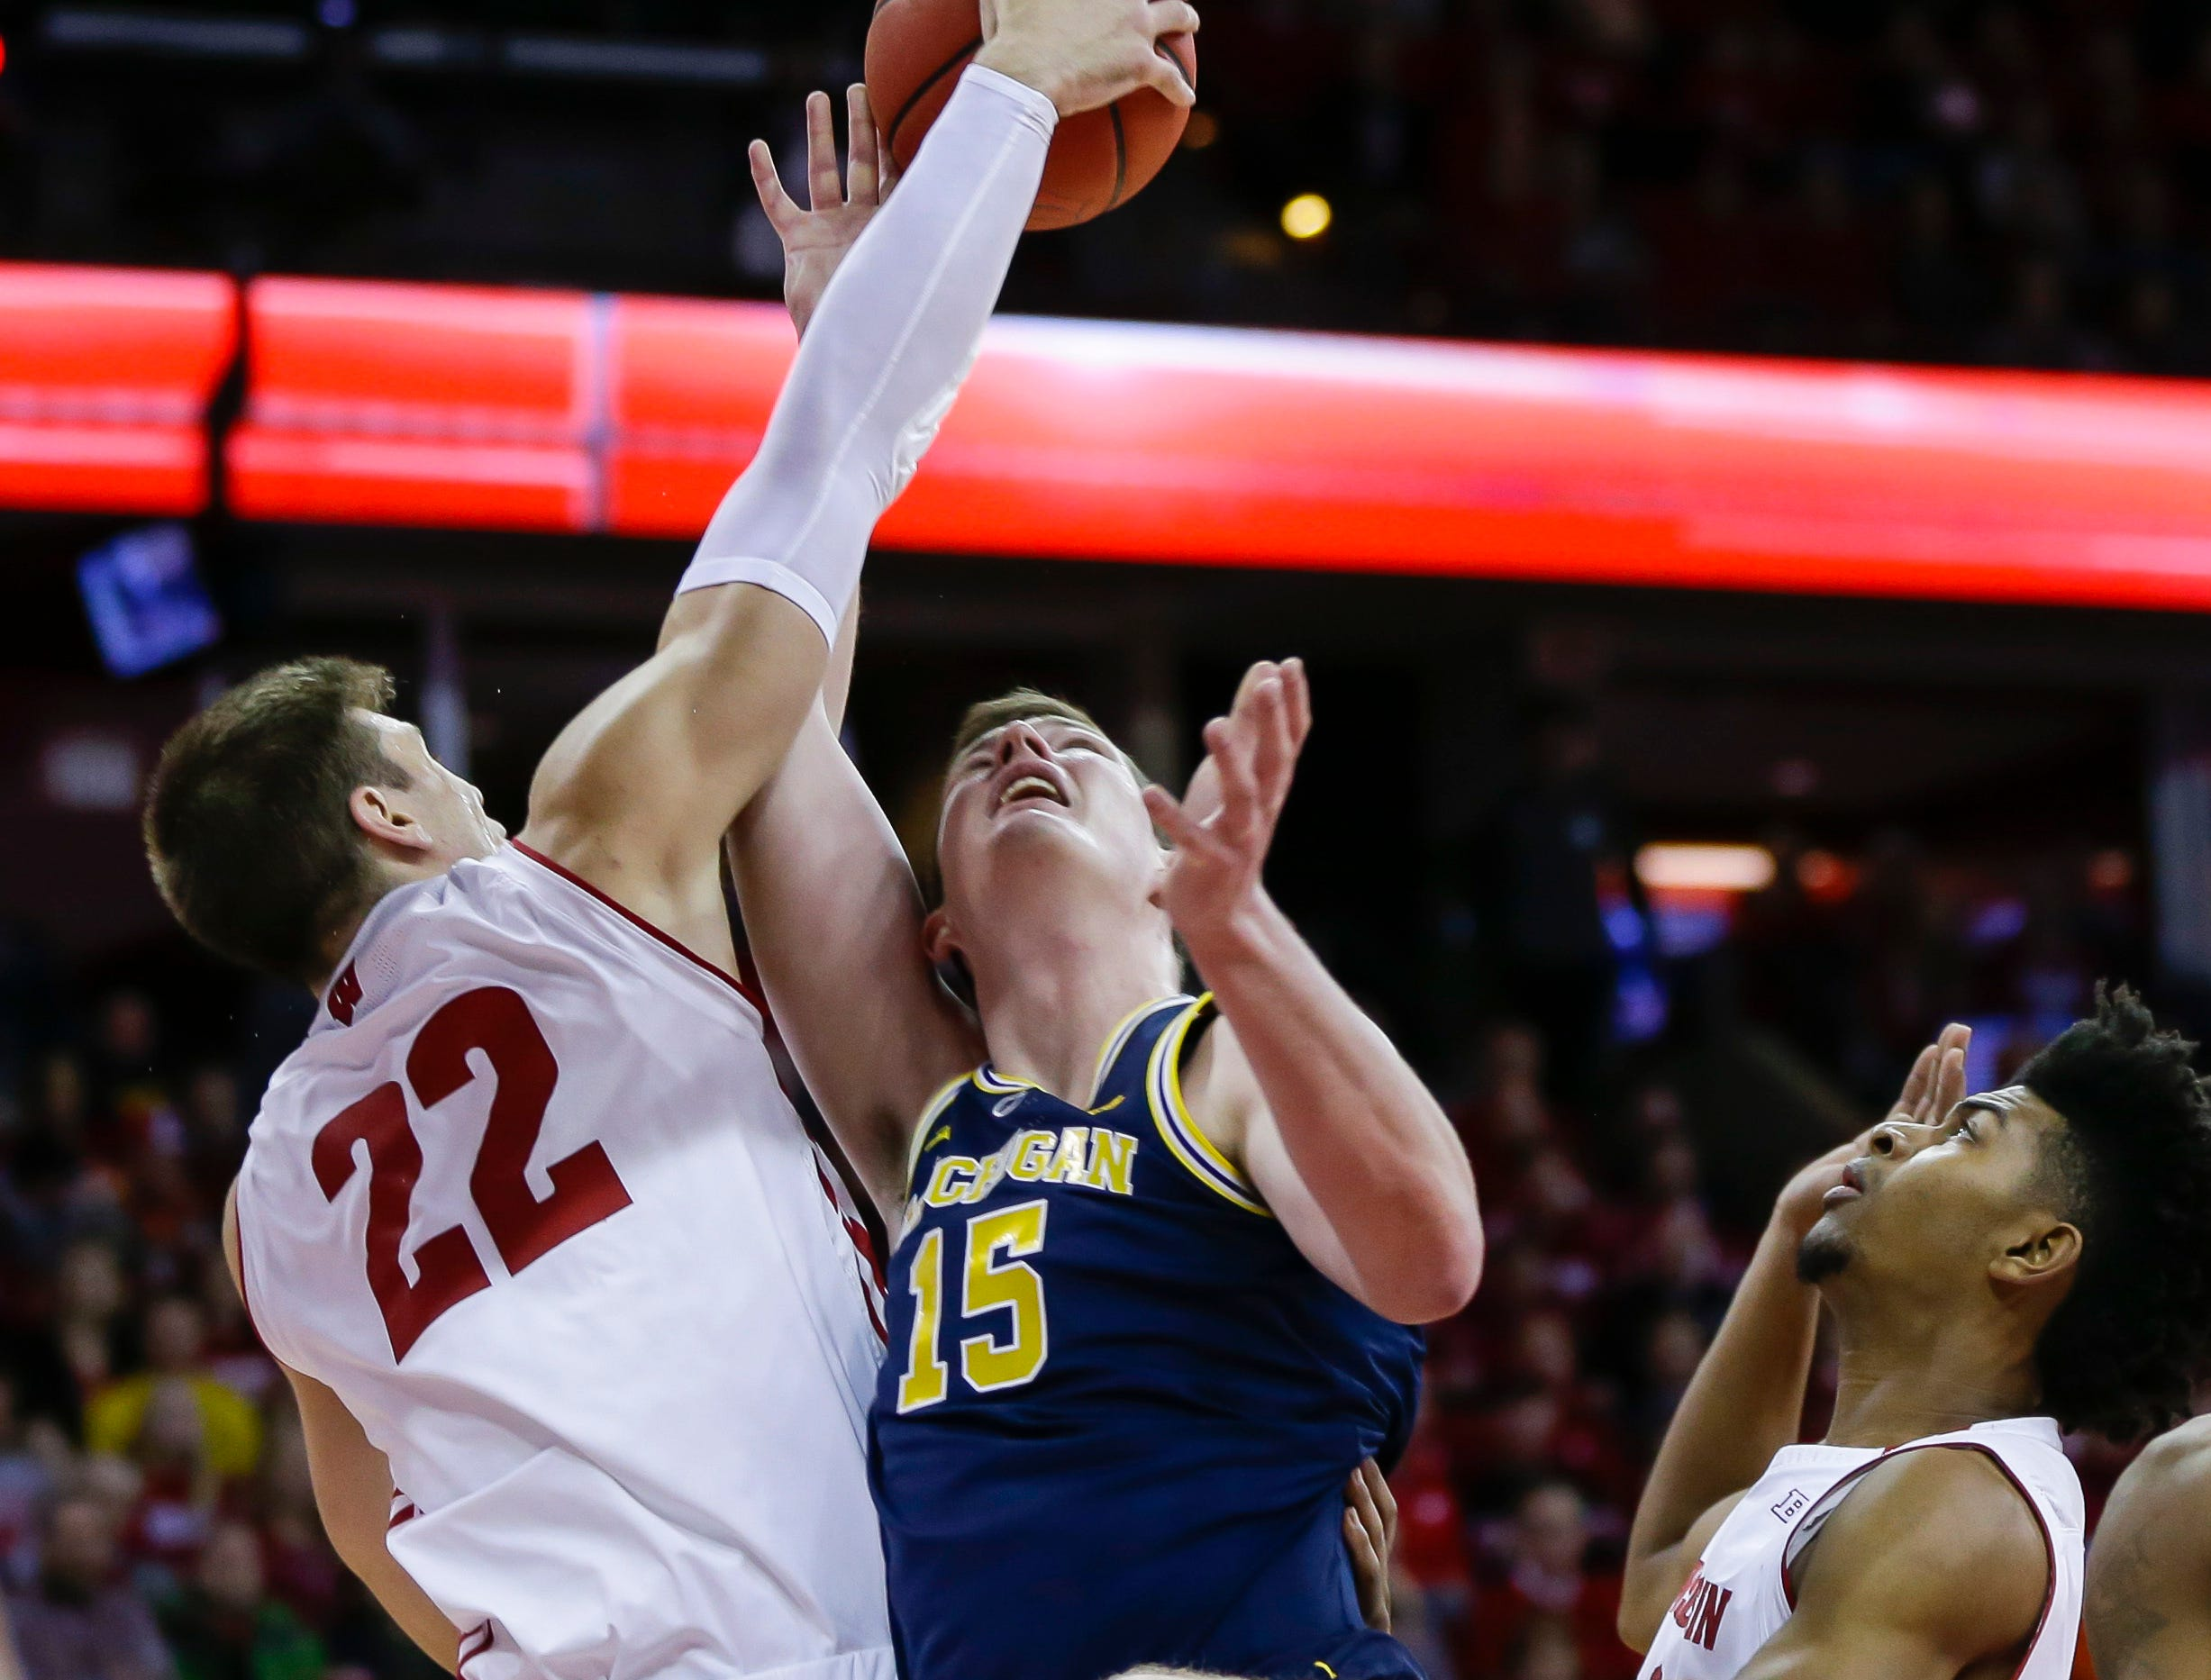 Wisconsin's Ethan Happ (22) and Michigan's Jon Teske (15) battle for a rebound during the first half of an NCAA college basketball game Saturday, Jan. 19, 2019, in Madison, Wis. (AP Photo/Andy Manis)